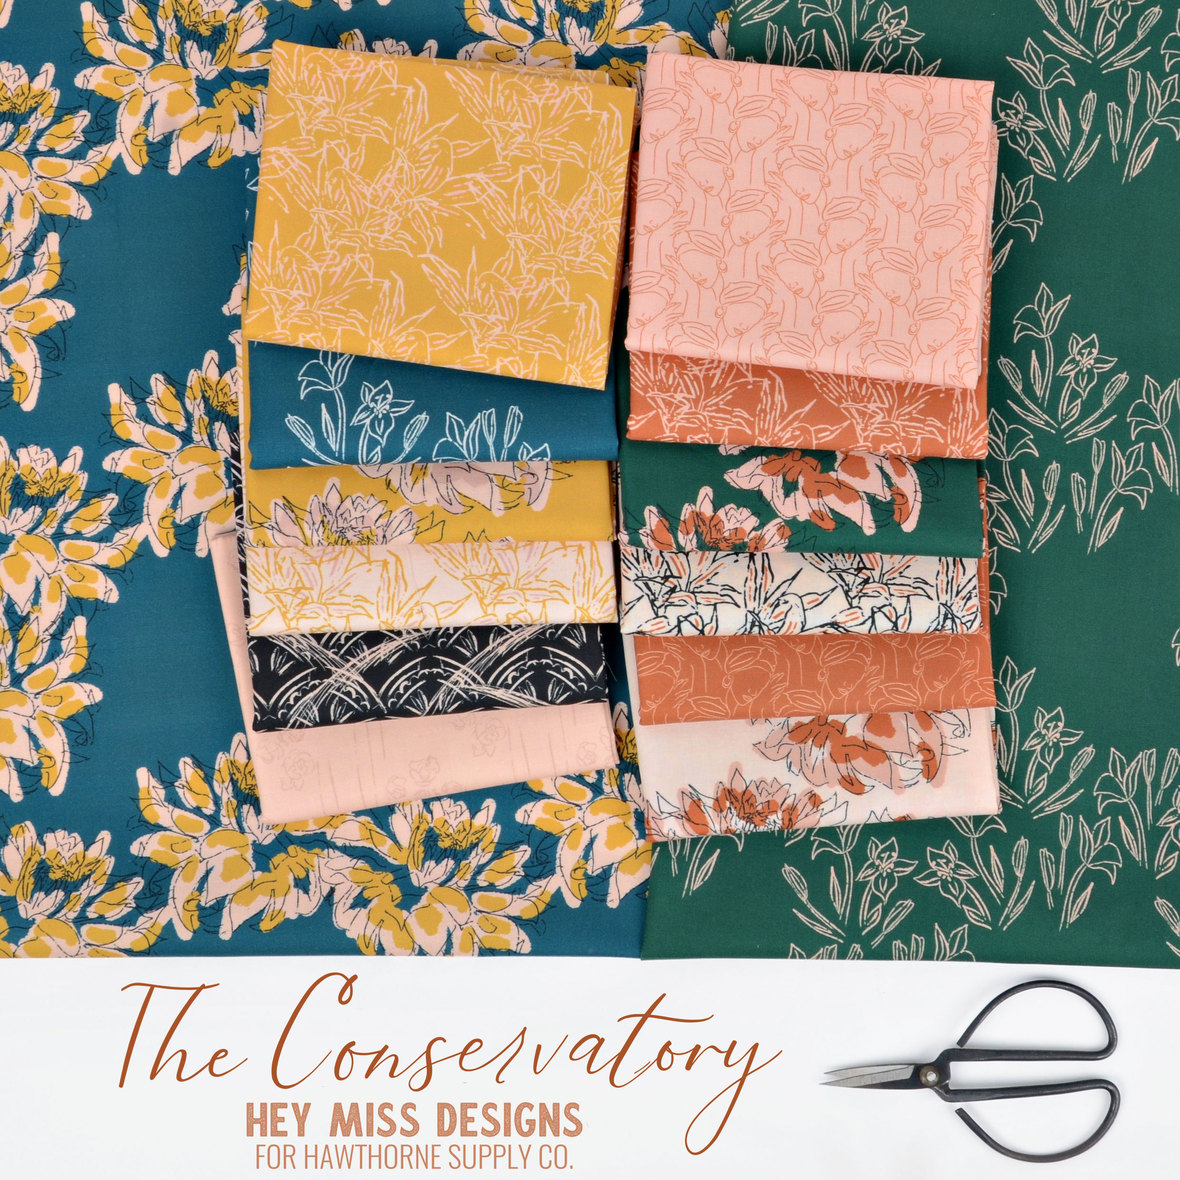 The-Conservatory-from-Hey-Miss-Designs-for-Hawthorne-Supply-Co